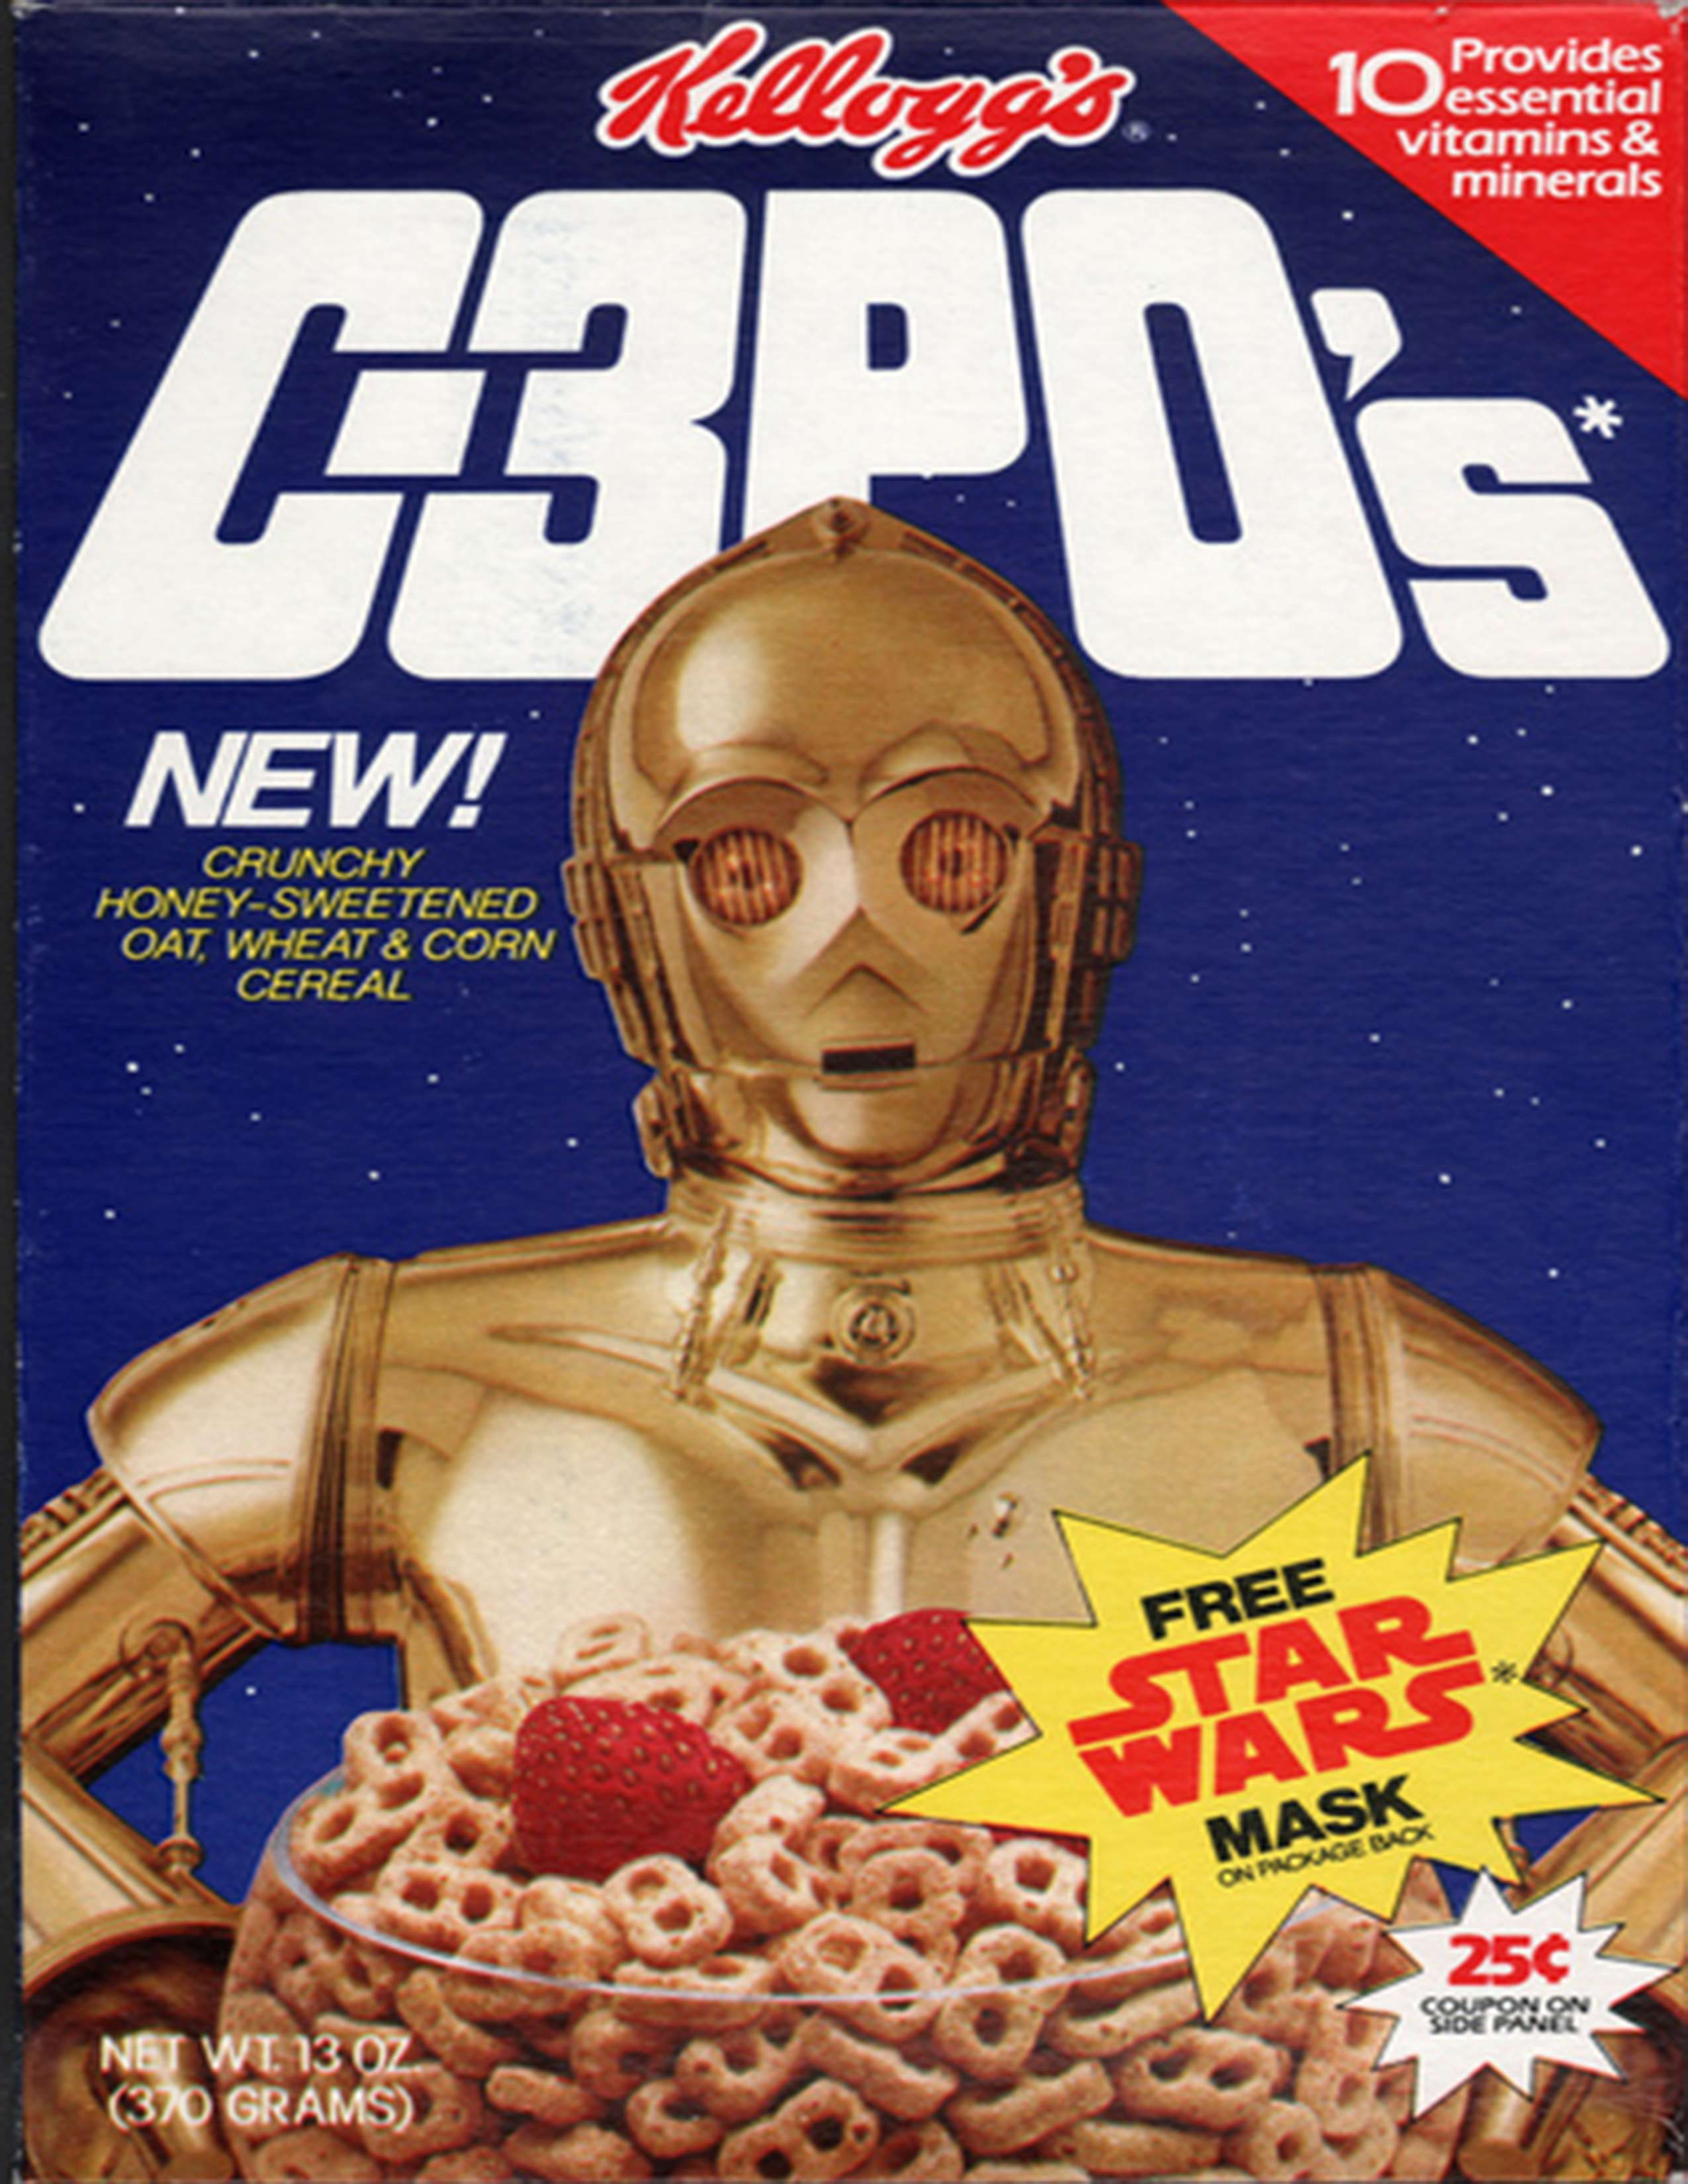 C3P0 cereal from Kellogg's.